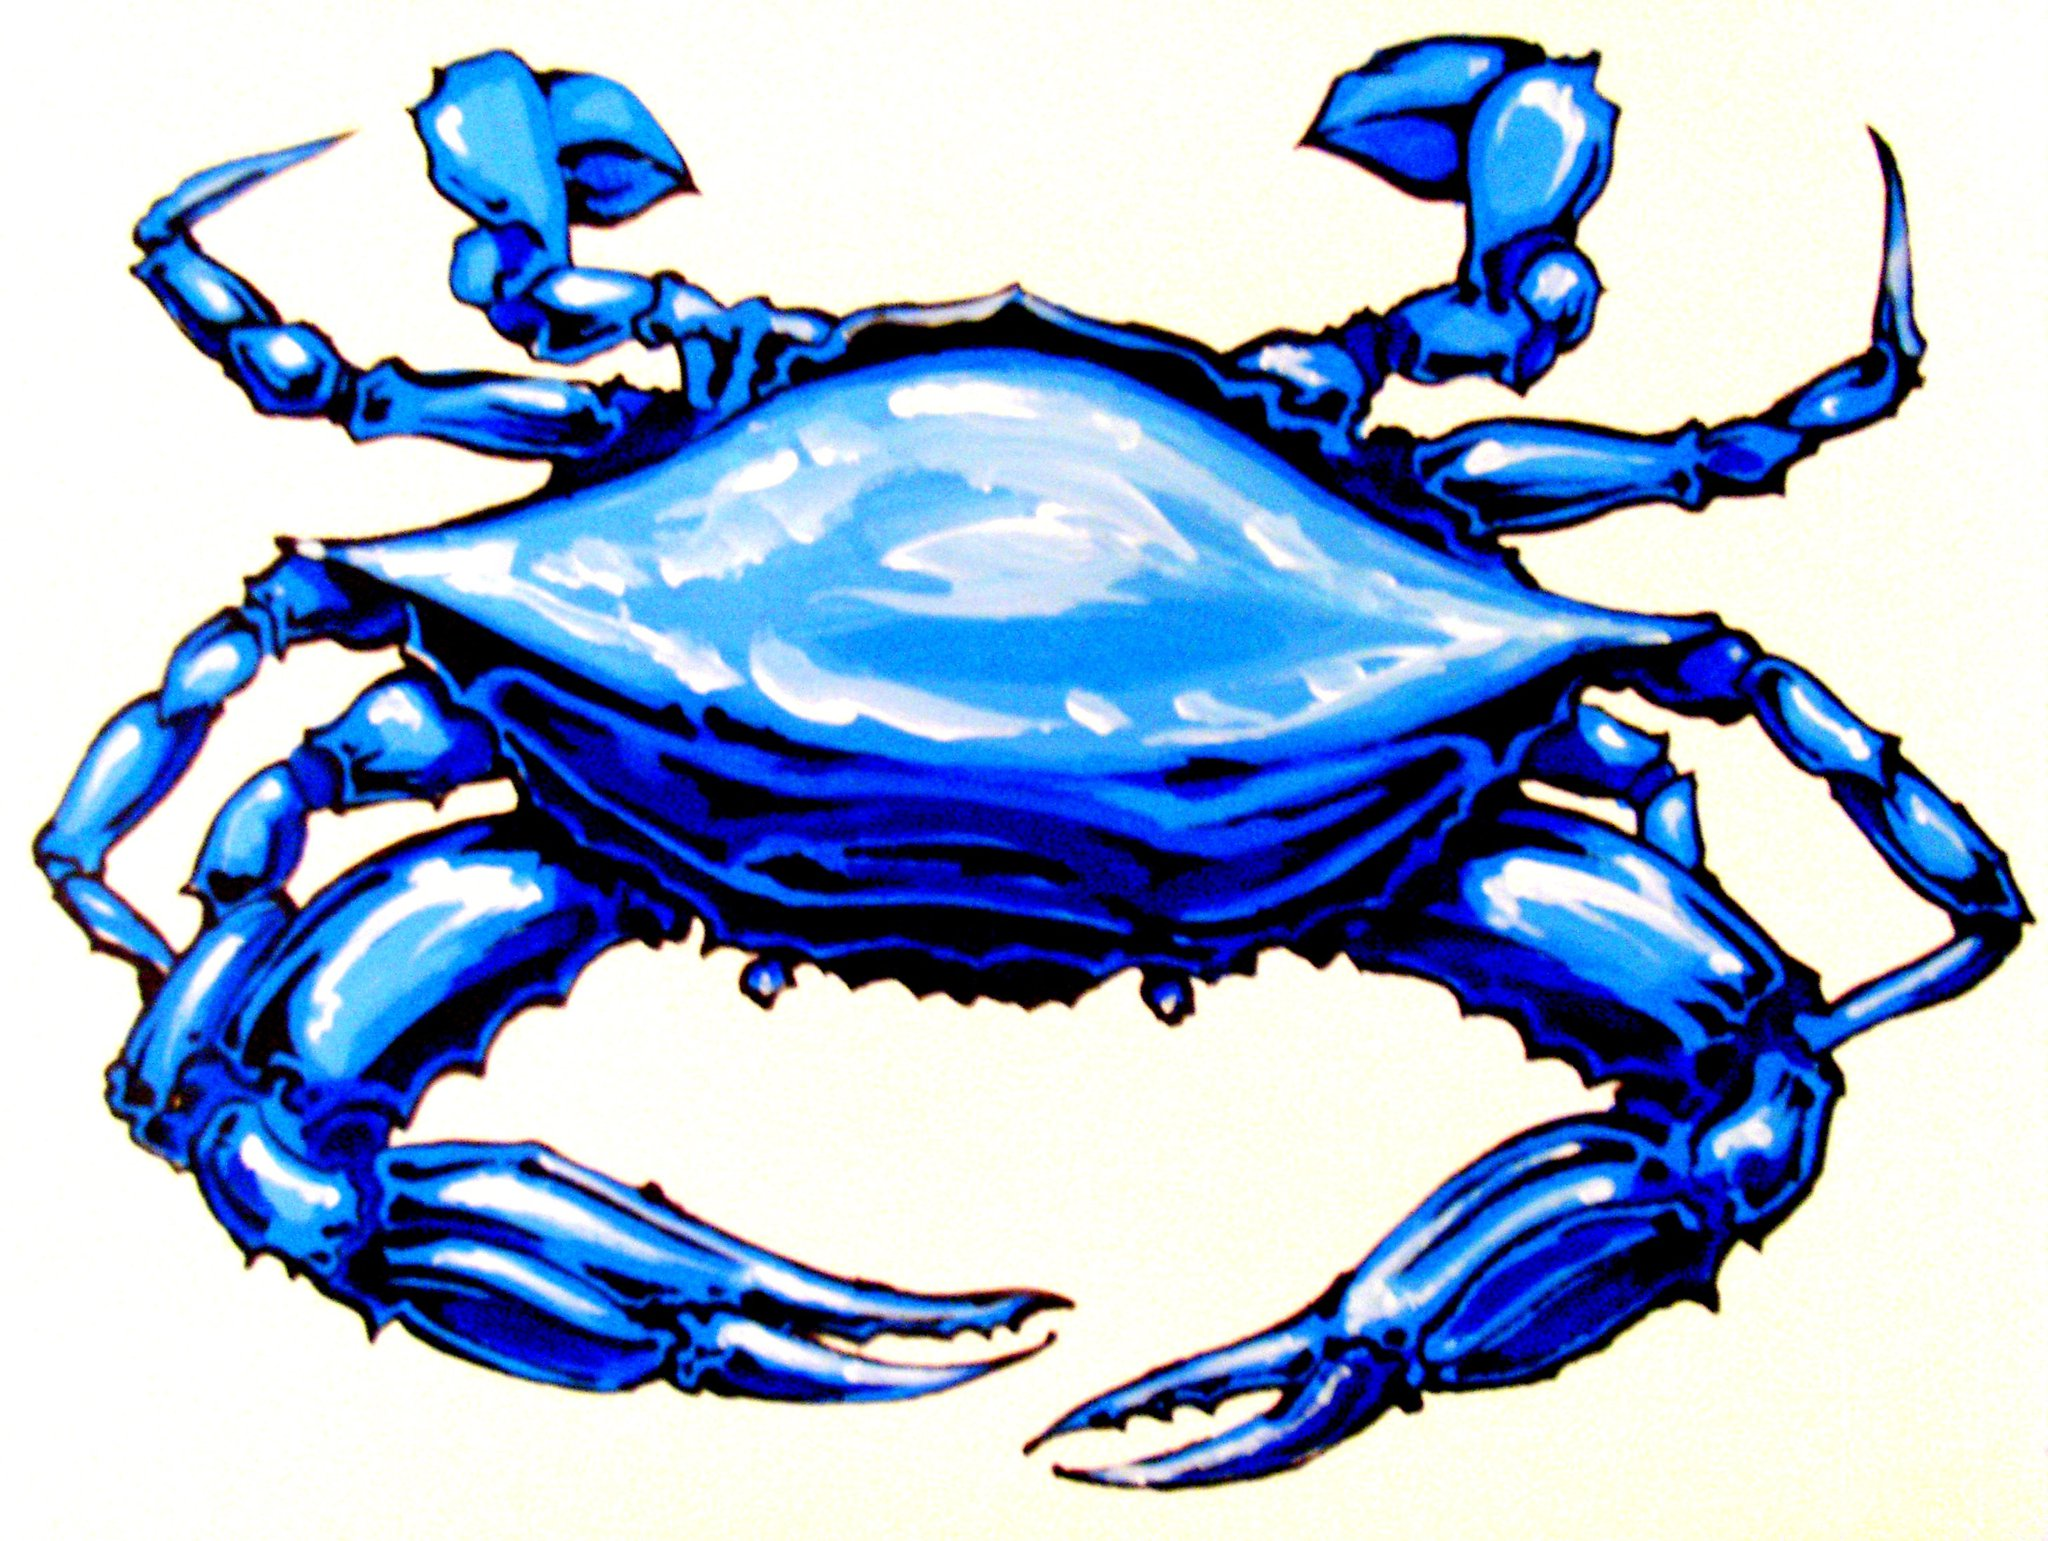 blue crab clipart clipart best maryland blue crab clipart blue crab black and white clipart